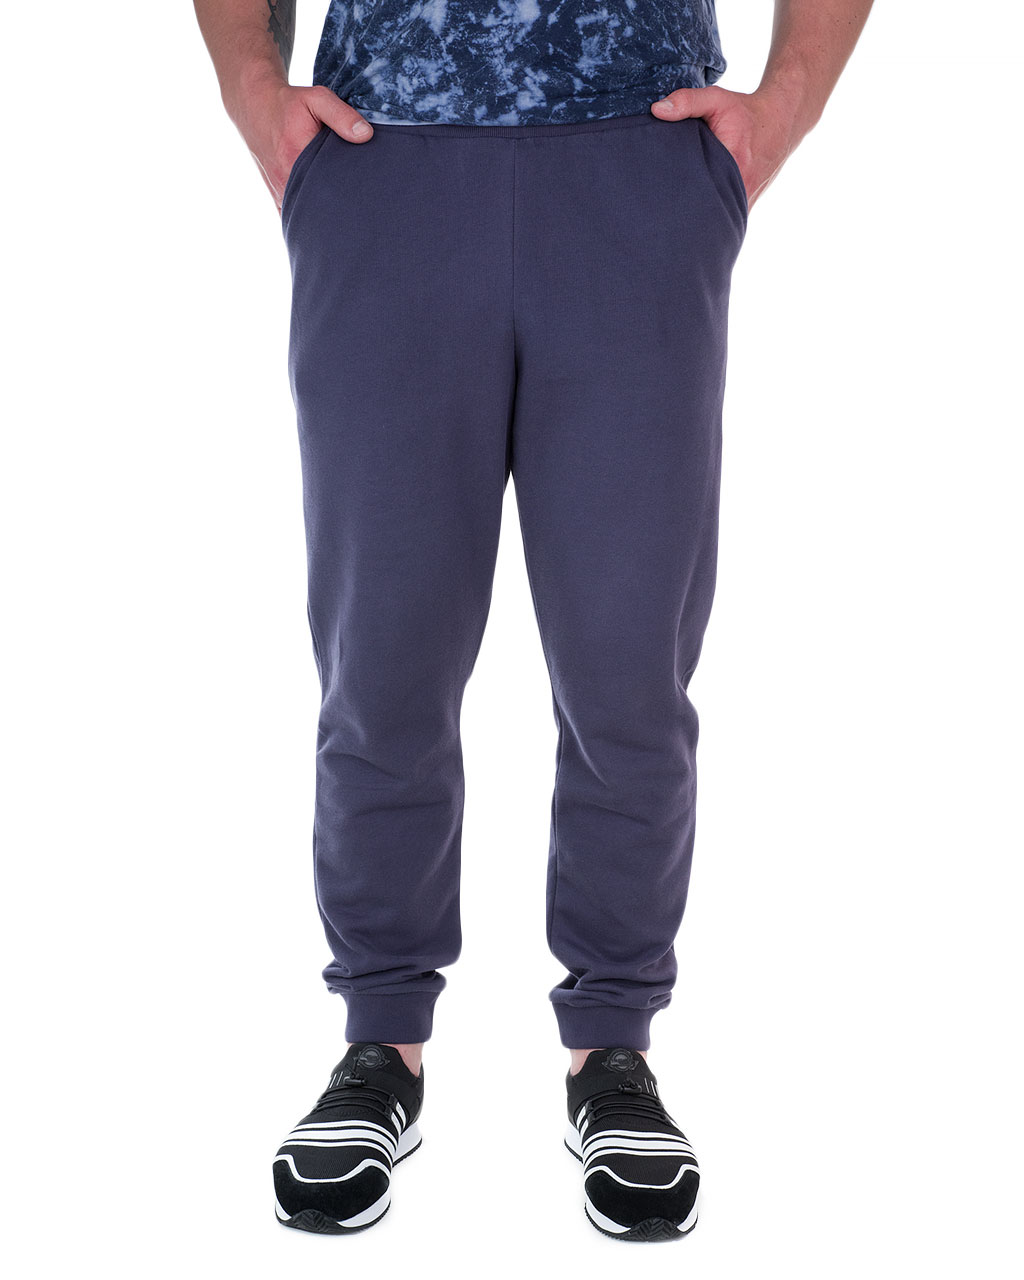 Men's trousers 52P00094-1T002297-U290/9 (4)